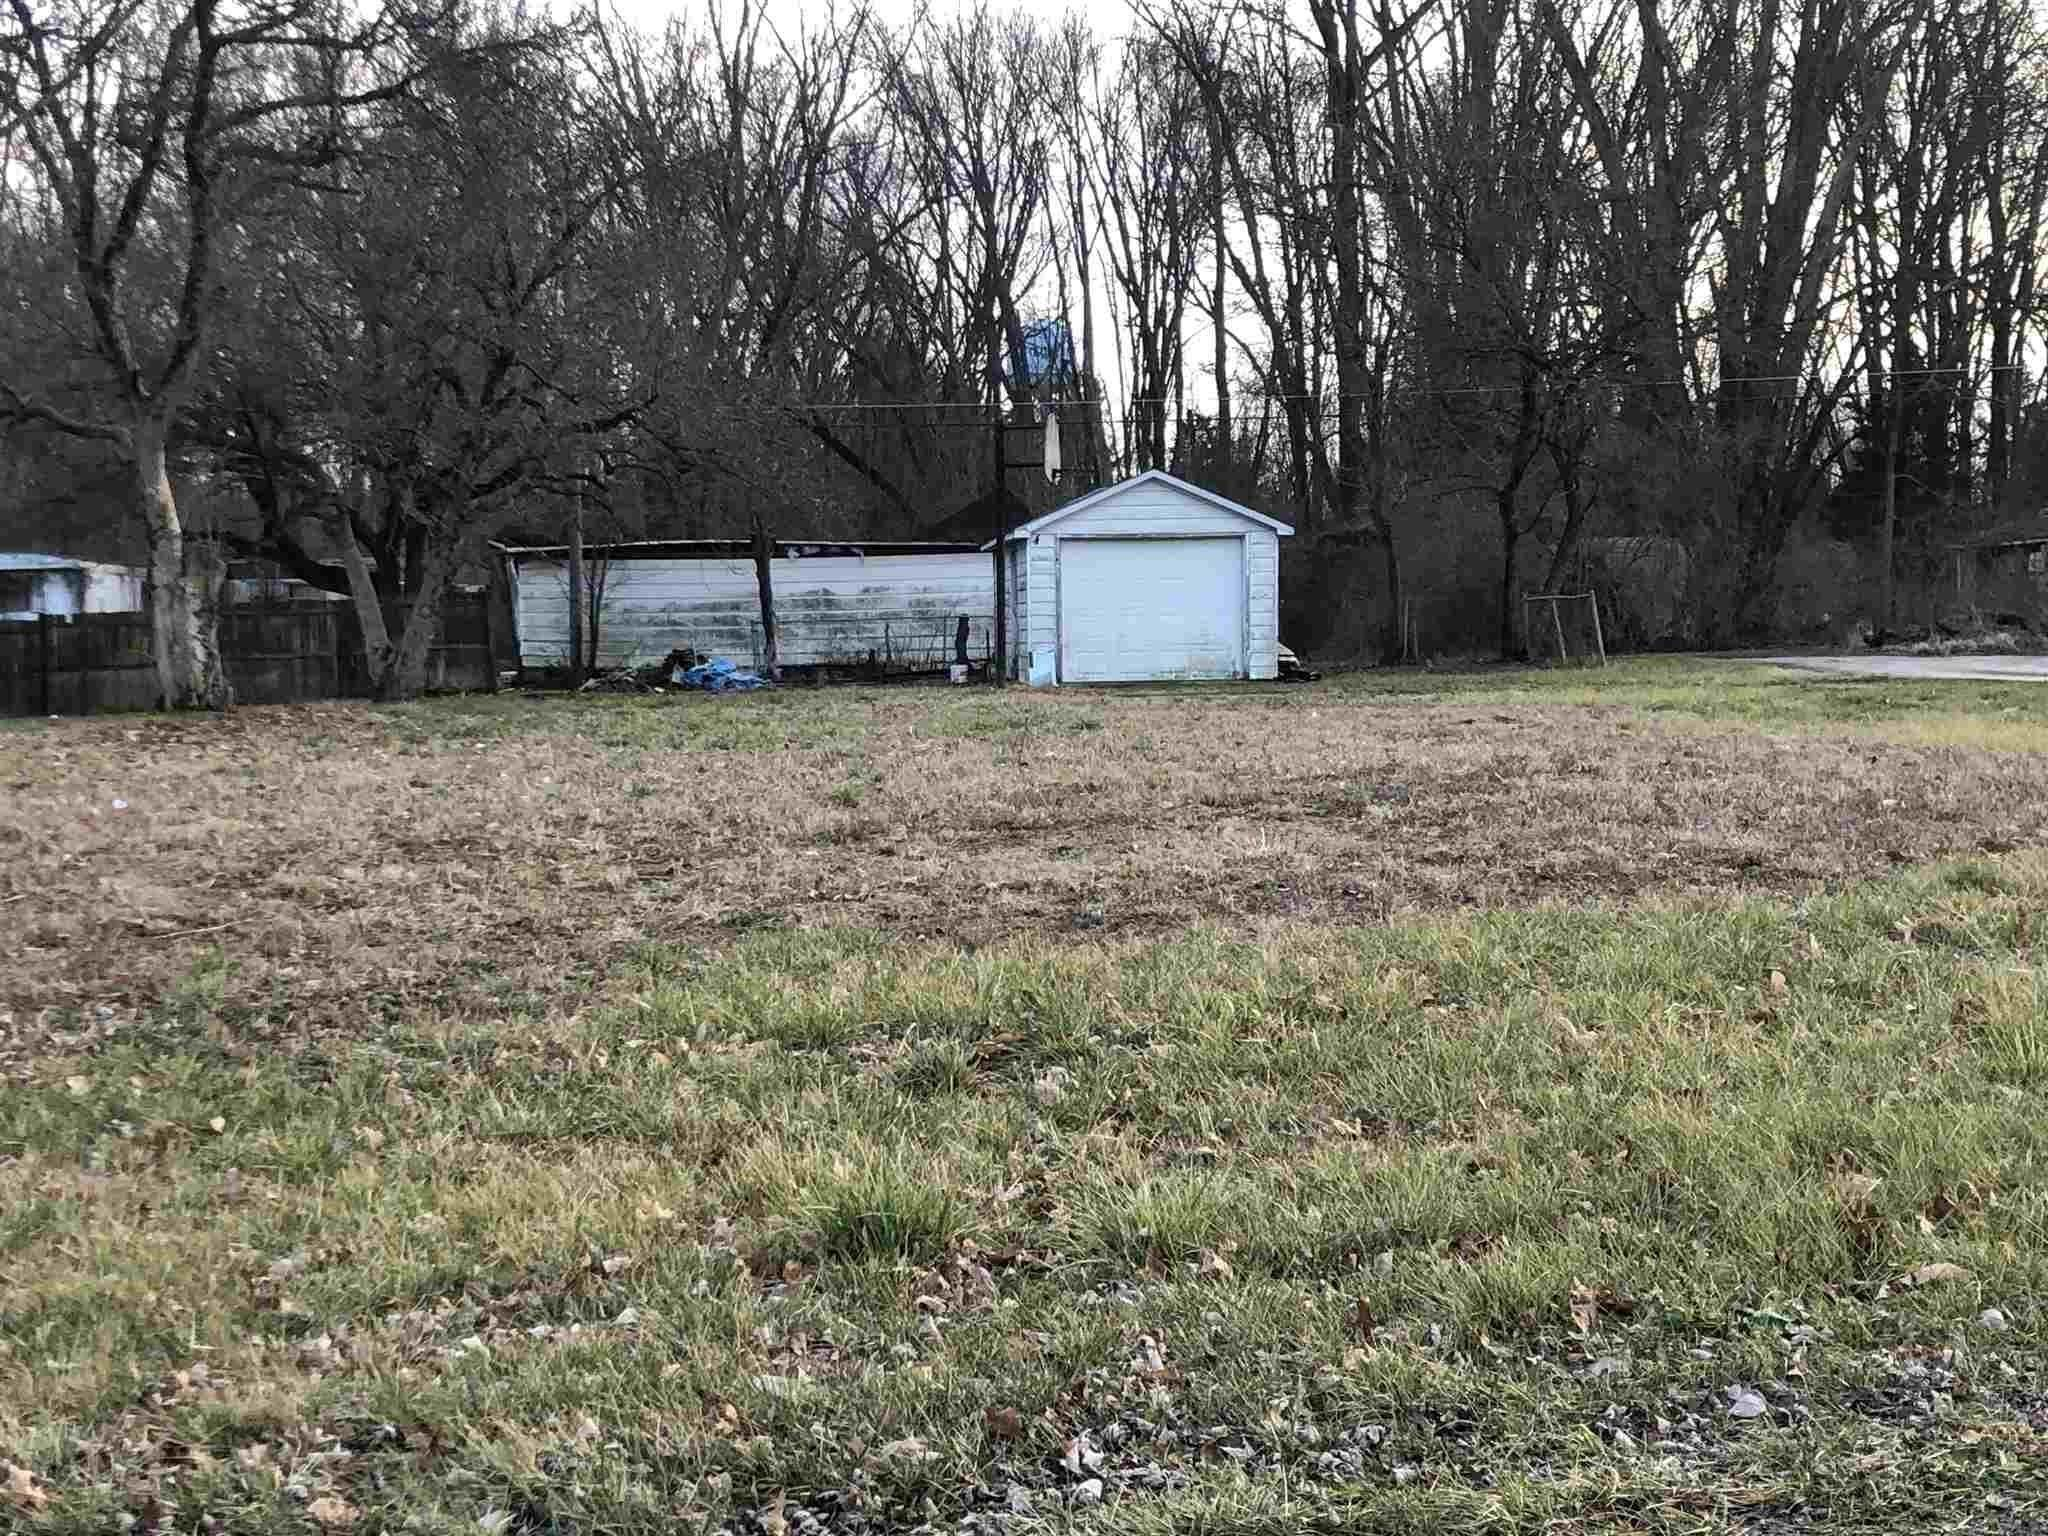 Residential Lots & Land for Sale at 303 E Columbus Street Staunton, Indiana 47881 United States